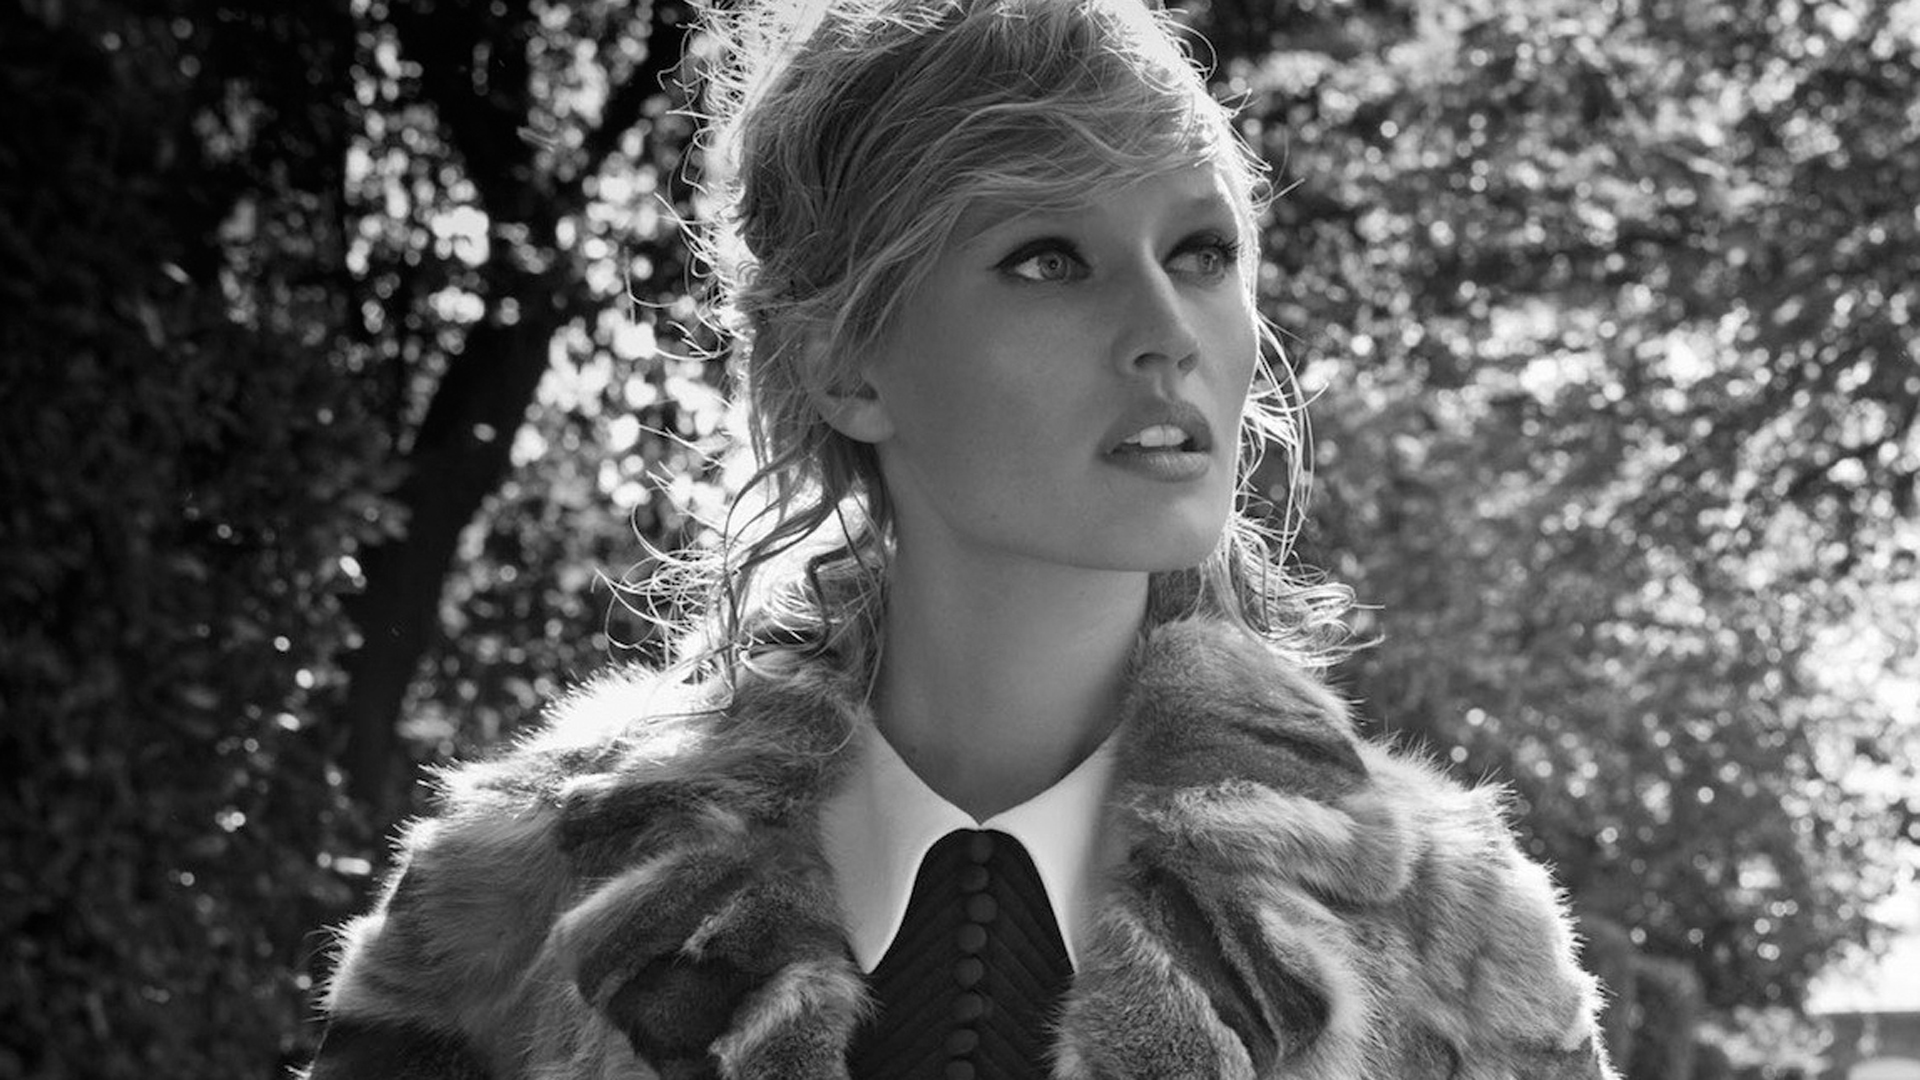 monochrome toni garrn wallpaper 60301